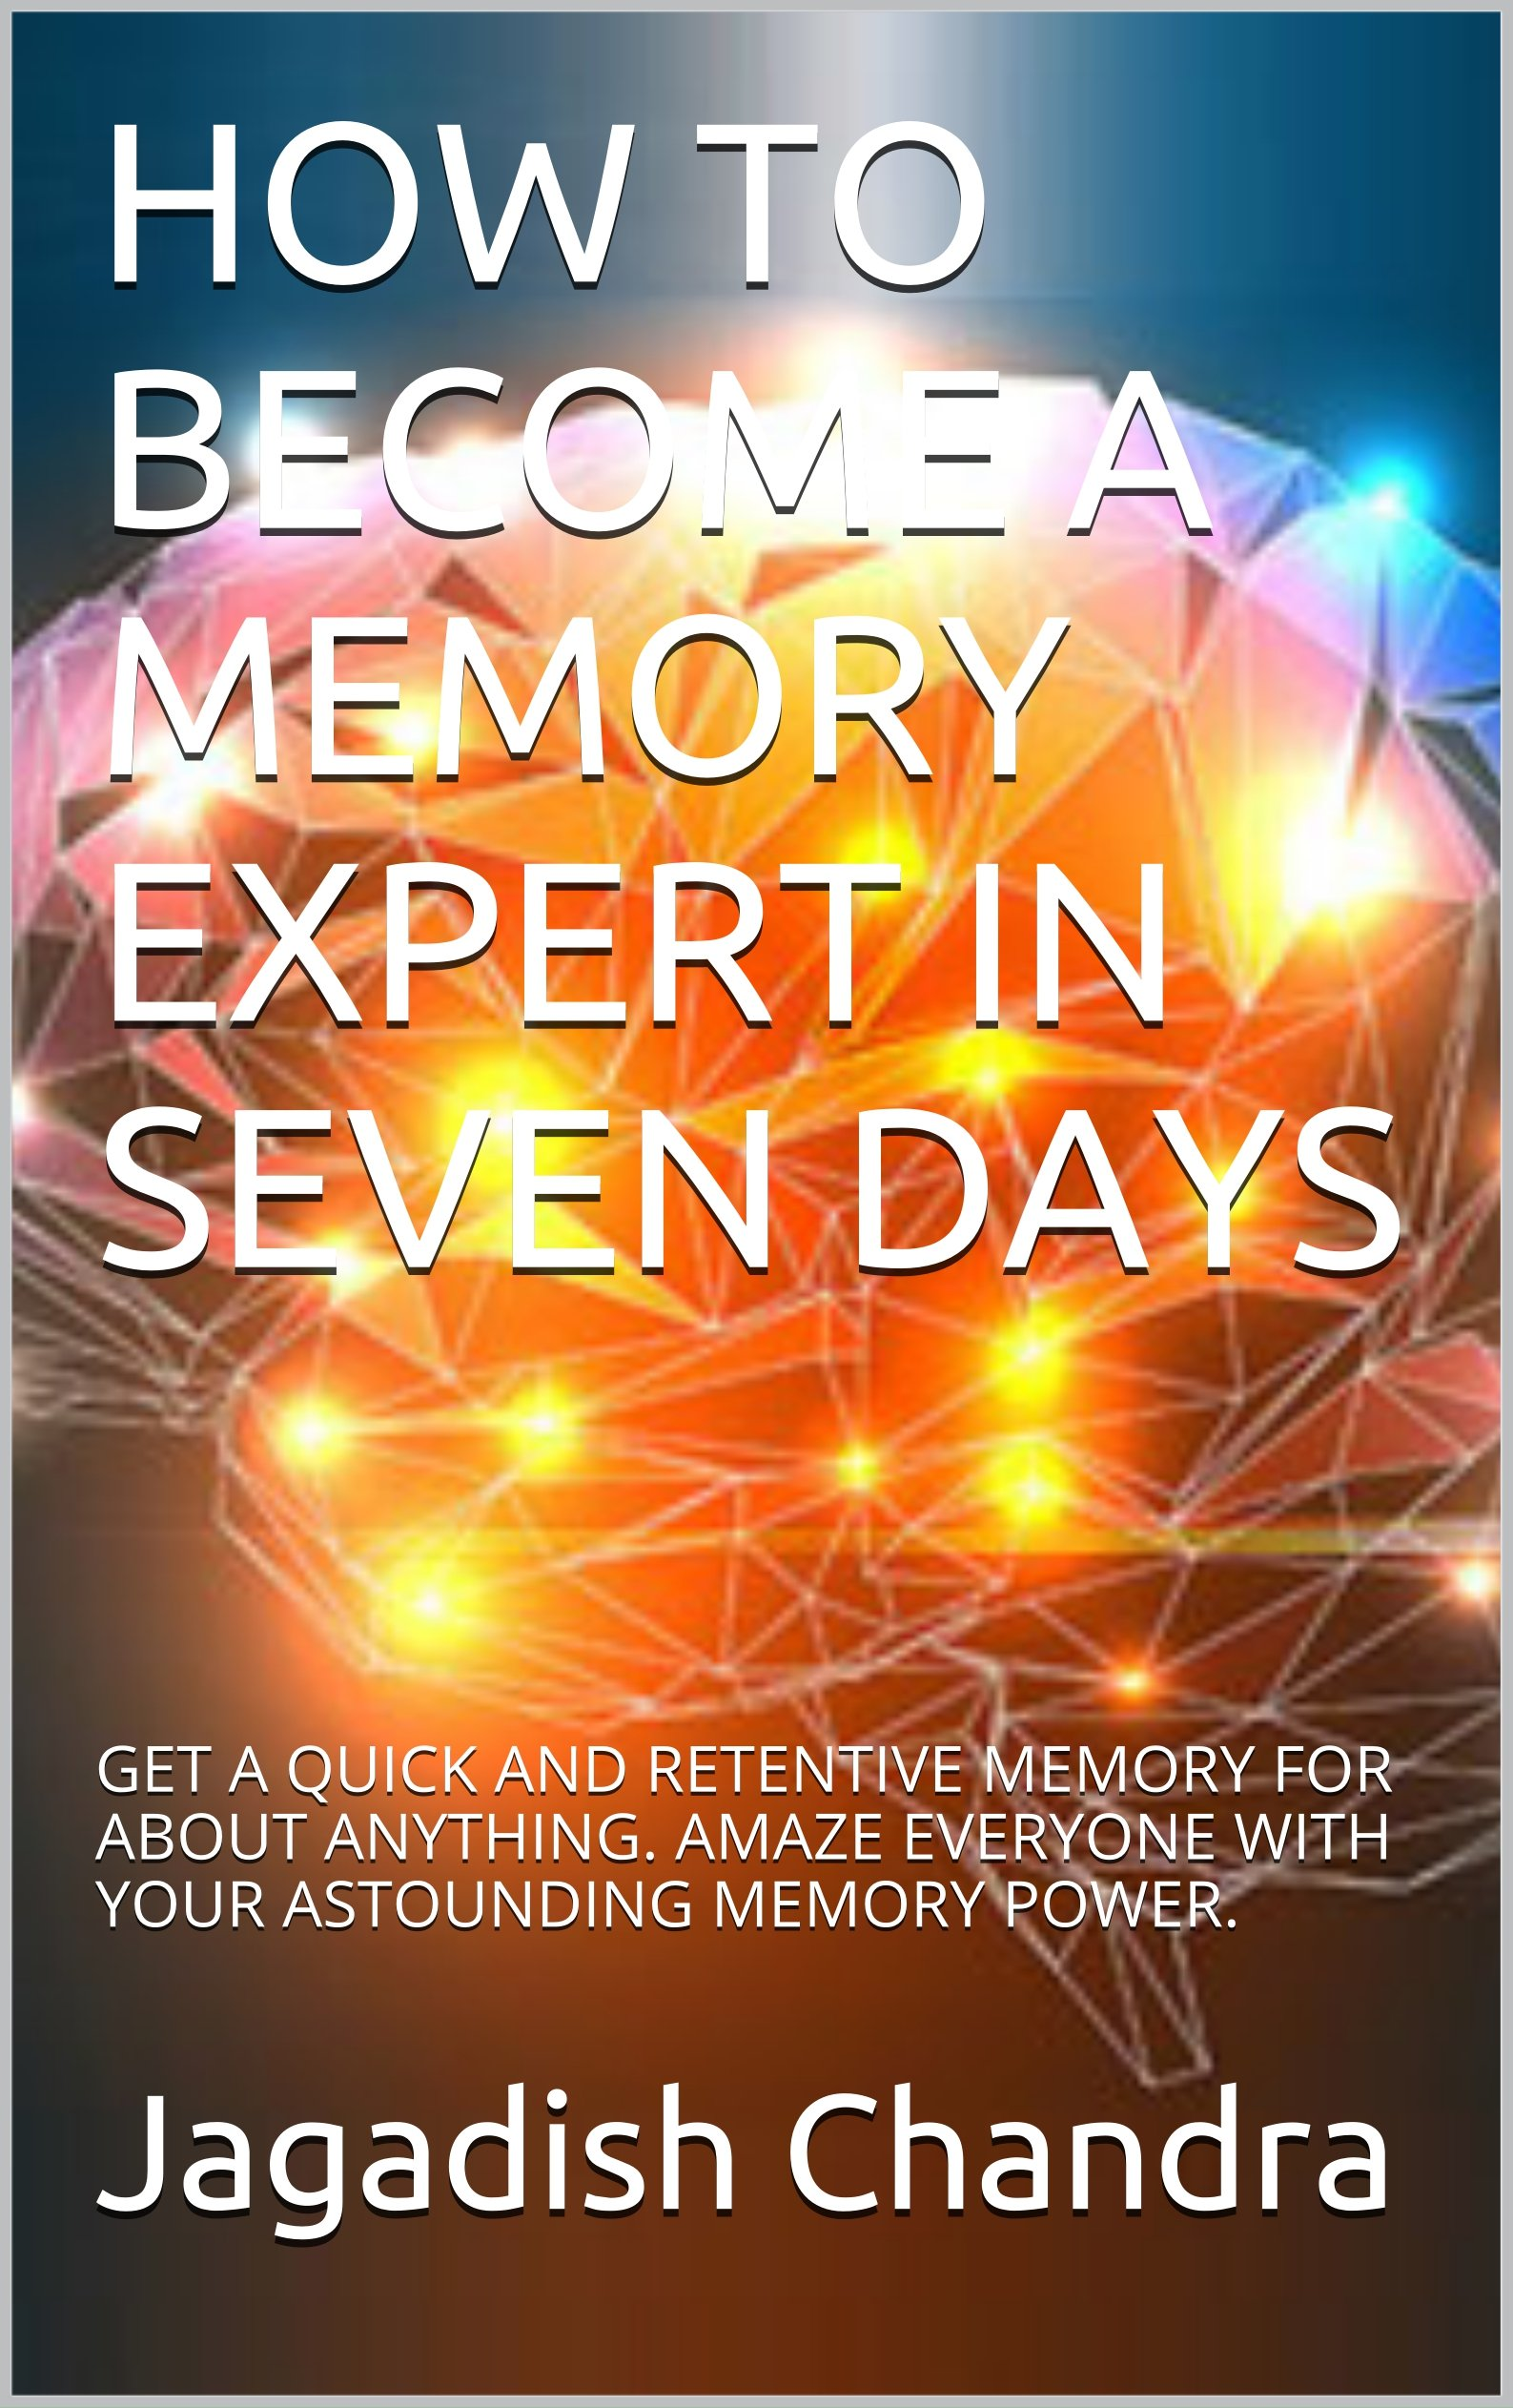 HOW TO BECOME A MEMORY EXPERT IN SEVEN DAYS: GET A QUICK AND RETENTIVE MEMORY FOR ABOUT ANYTHING.  AMAZE EVERYONE WITH YOUR ASTOUNDING MEMORY POWER.